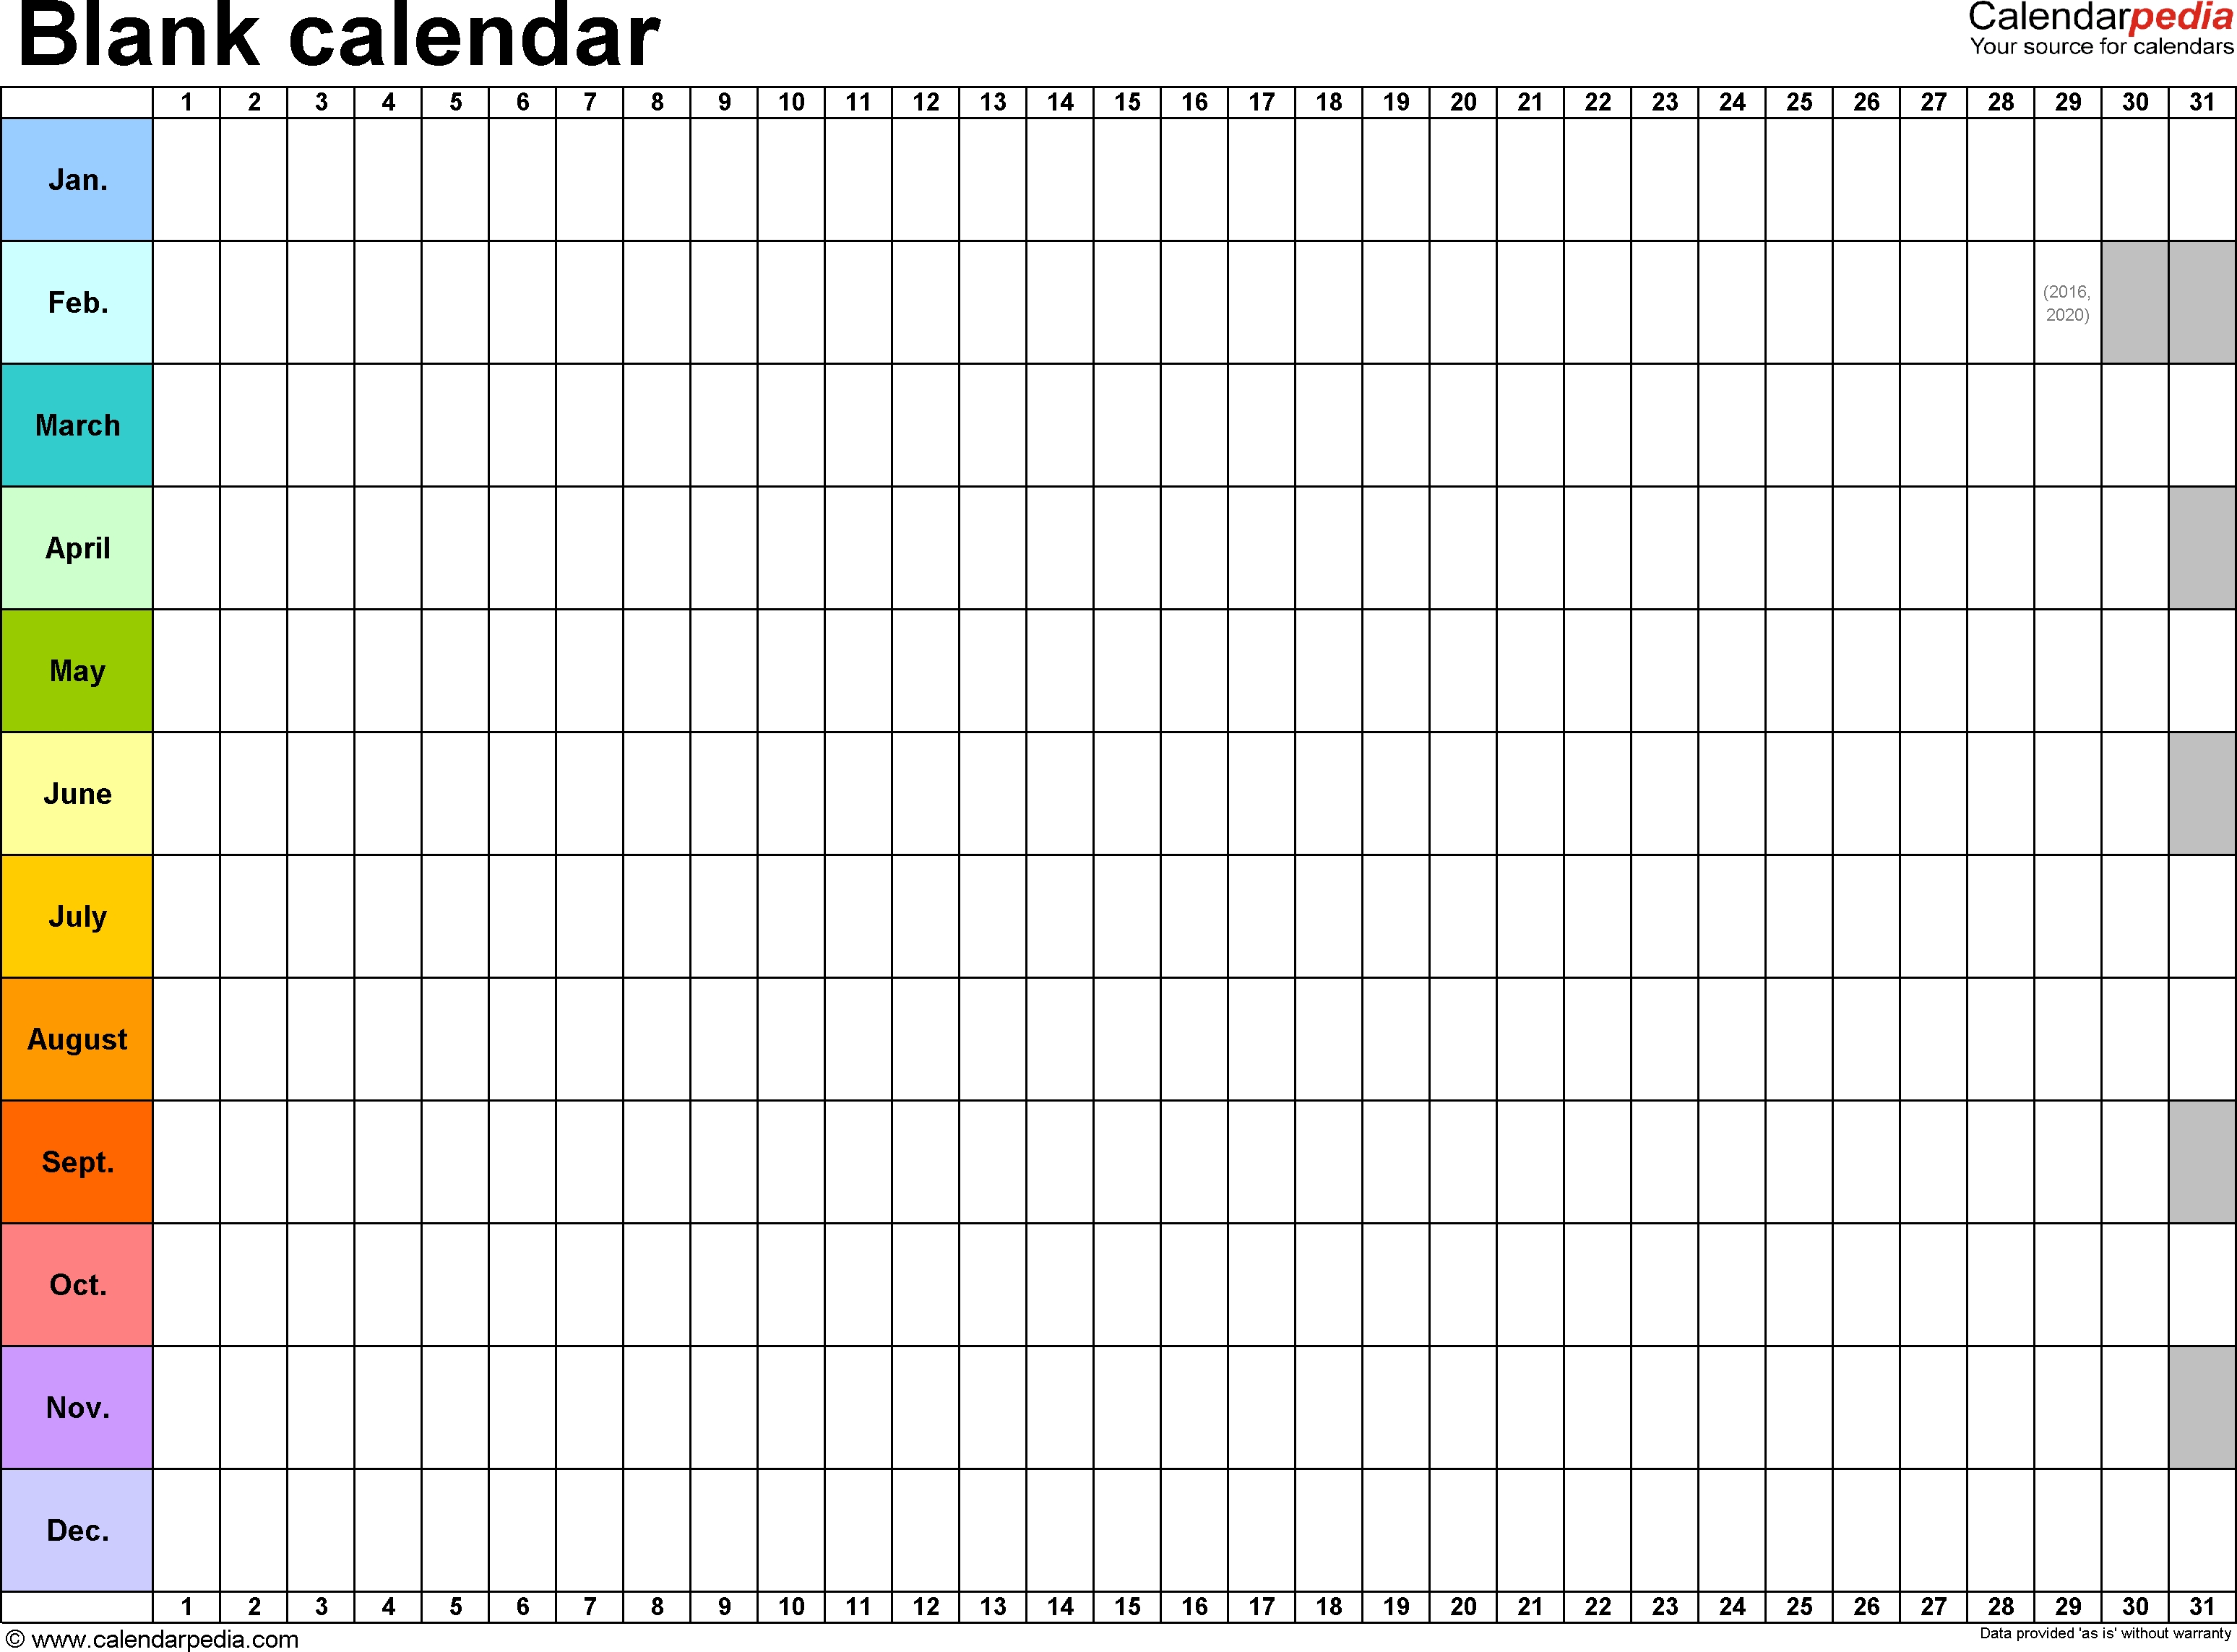 Blank Calendar - 9 Free Printable Microsoft Word Templates intended for Printable Blank 31 Day Calendar